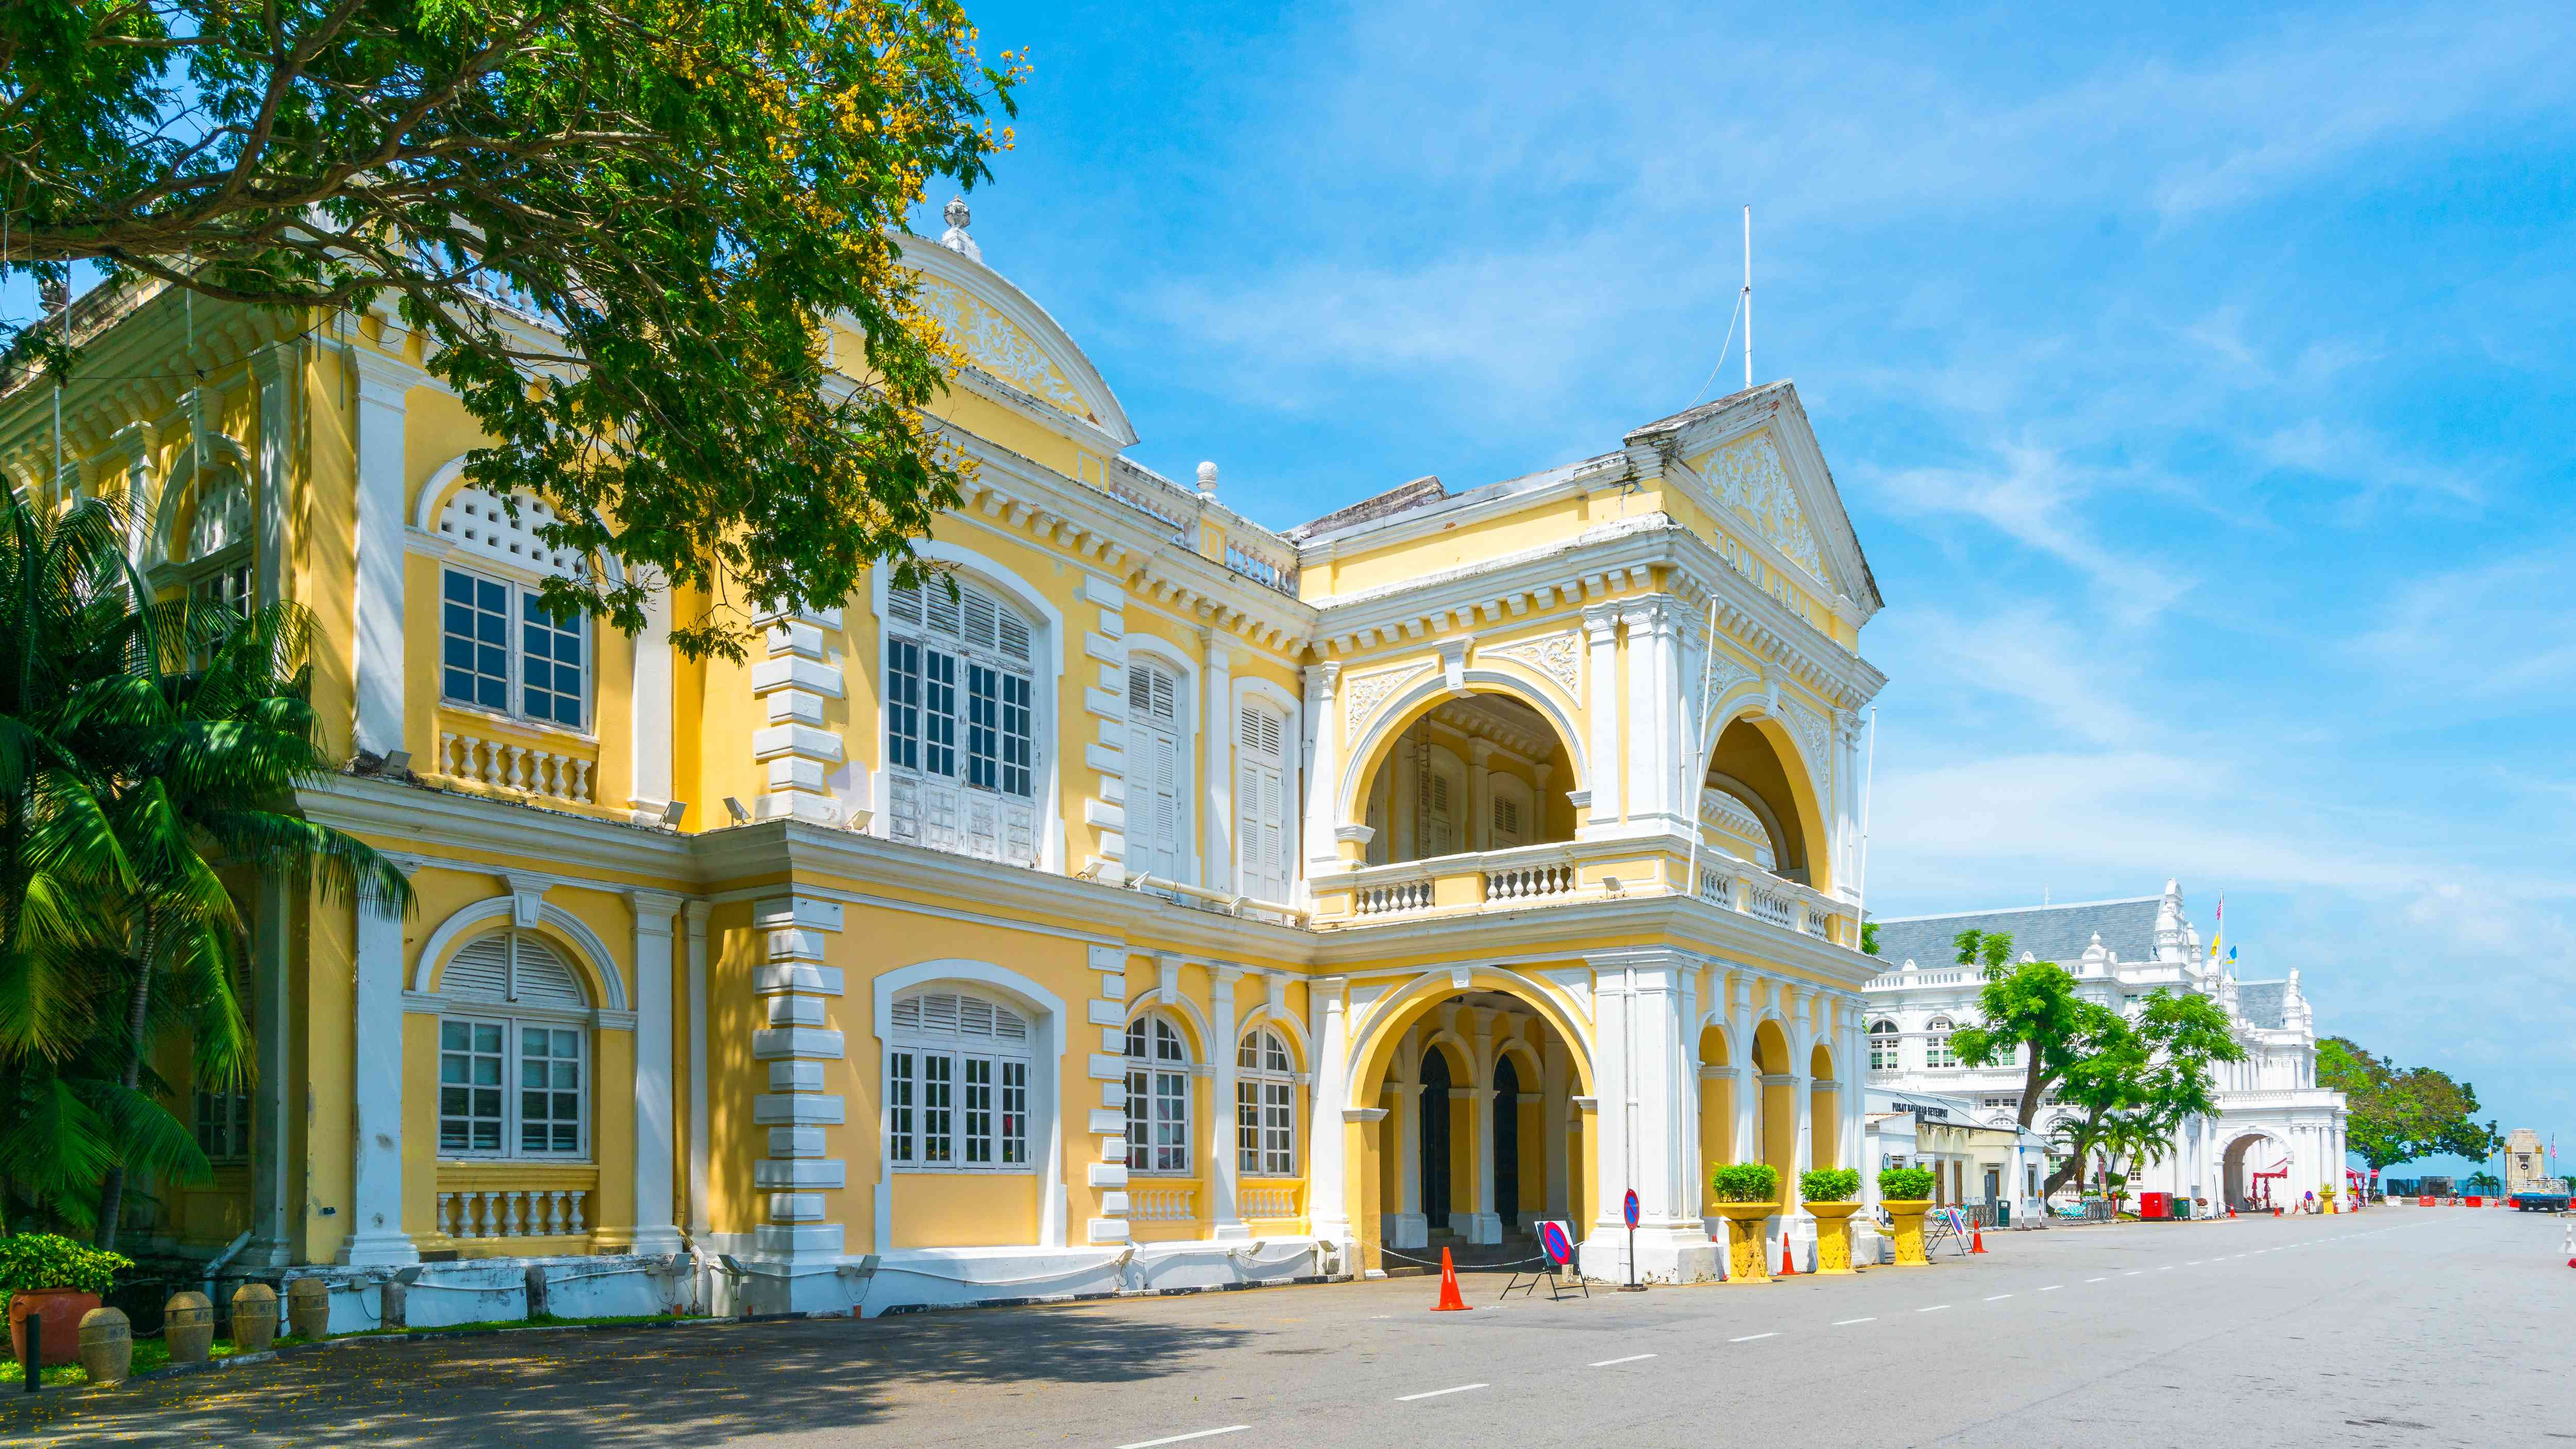 The Town Hall building in Penang, Malaysia